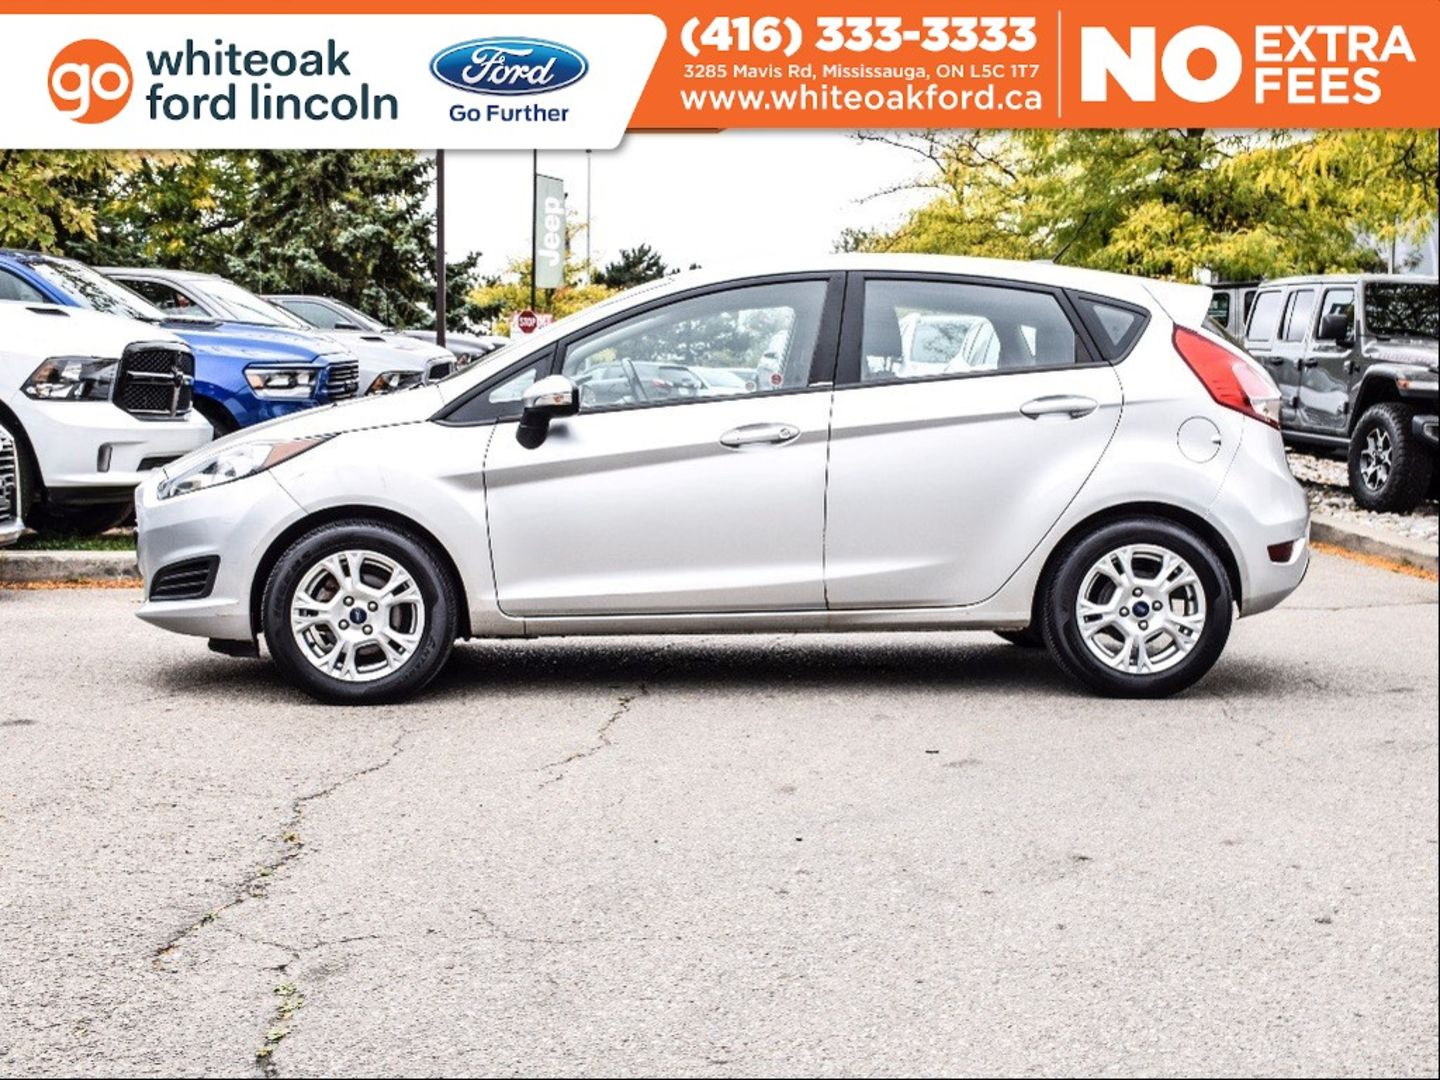 2015 Ford Fiesta SE for sale in Mississauga, Ontario